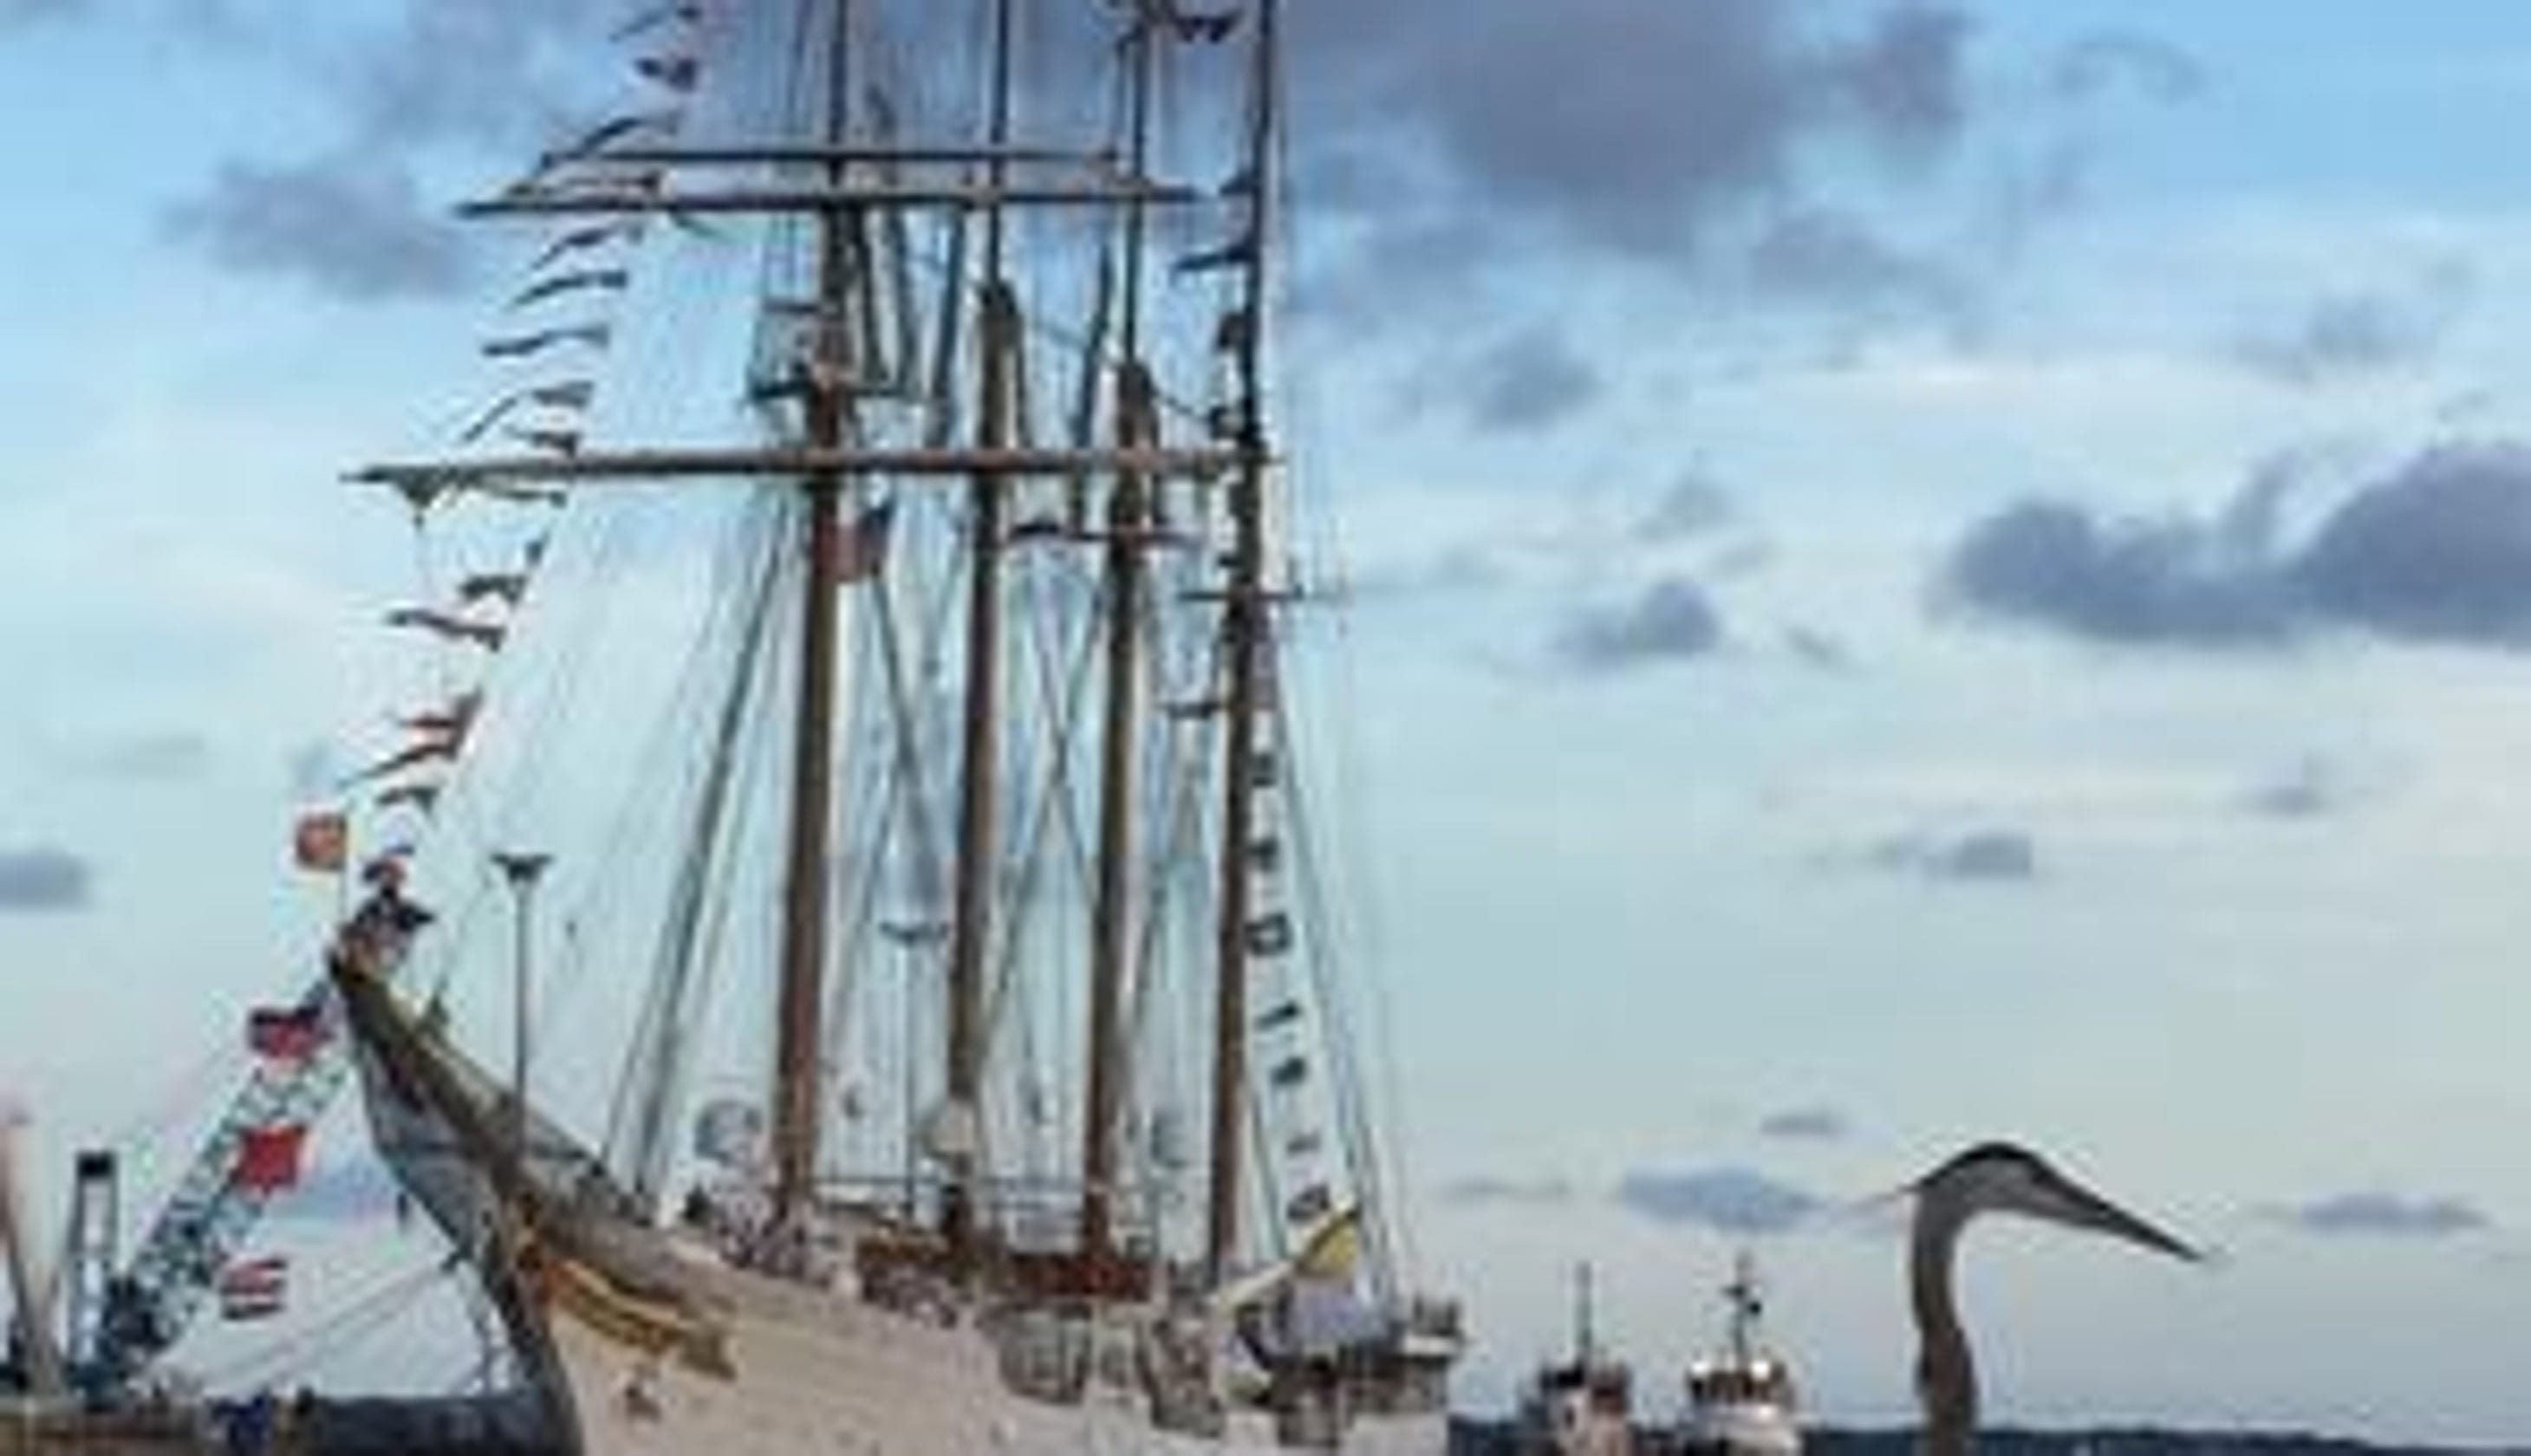 Juan Sebastián Elcano Ferdinand Magellan S Replacement: Spanish Tall Ship Elcano To Return To Pensacola In Spring